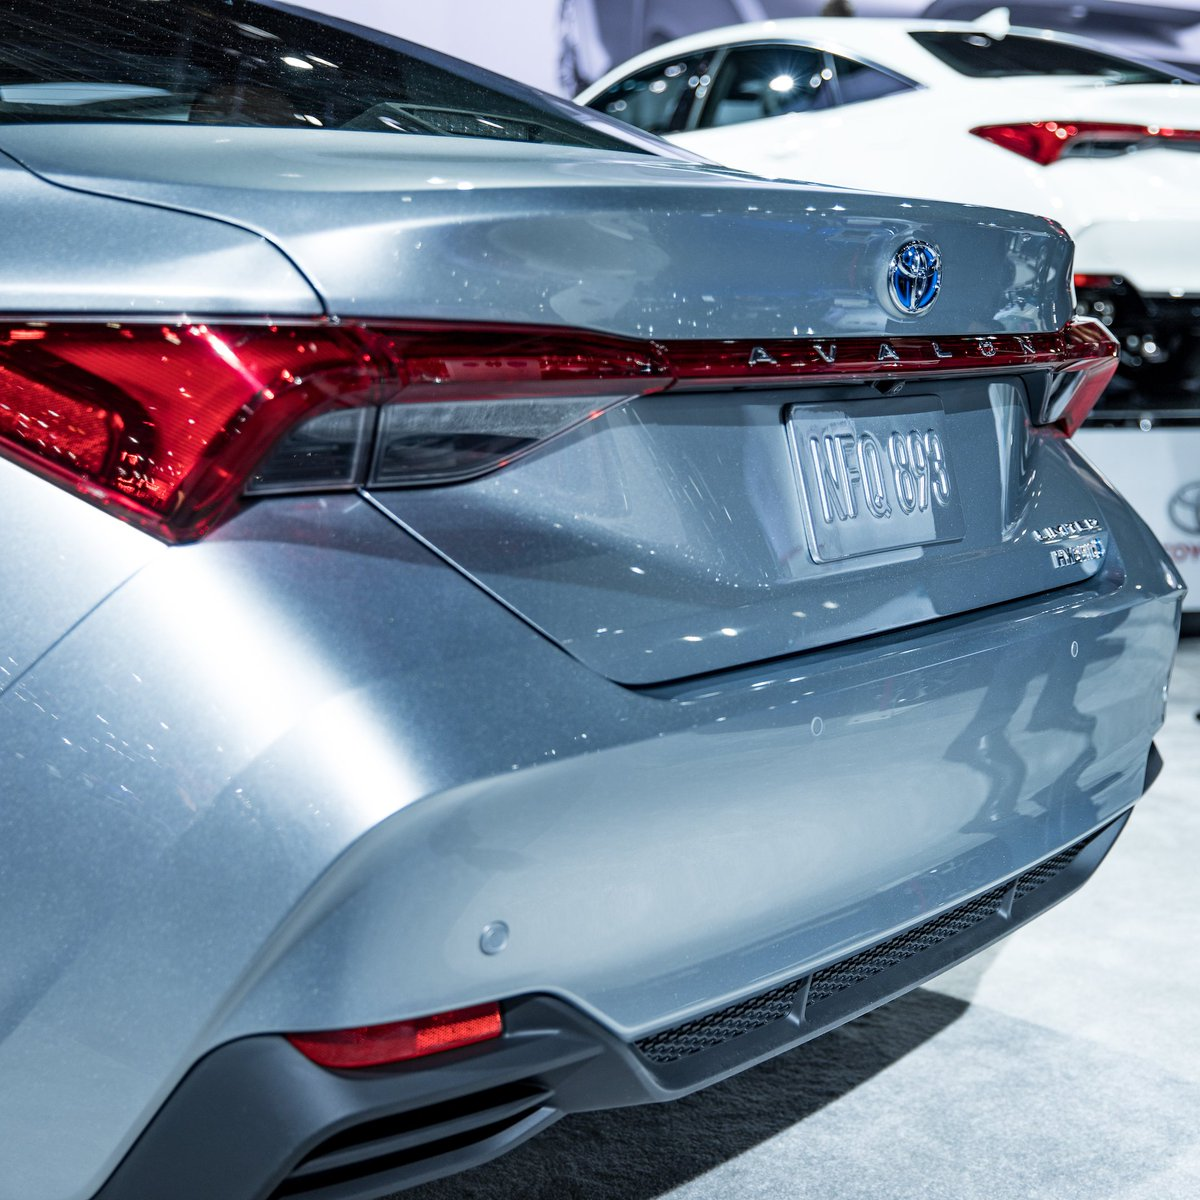 The #Avalon continues to be the only full hybrid in its segment. Introducing the all-new 2019 Avalon Limited Hybrid, built to carry on that legacy. #NAIAS https://t.co/asvsyubMzj